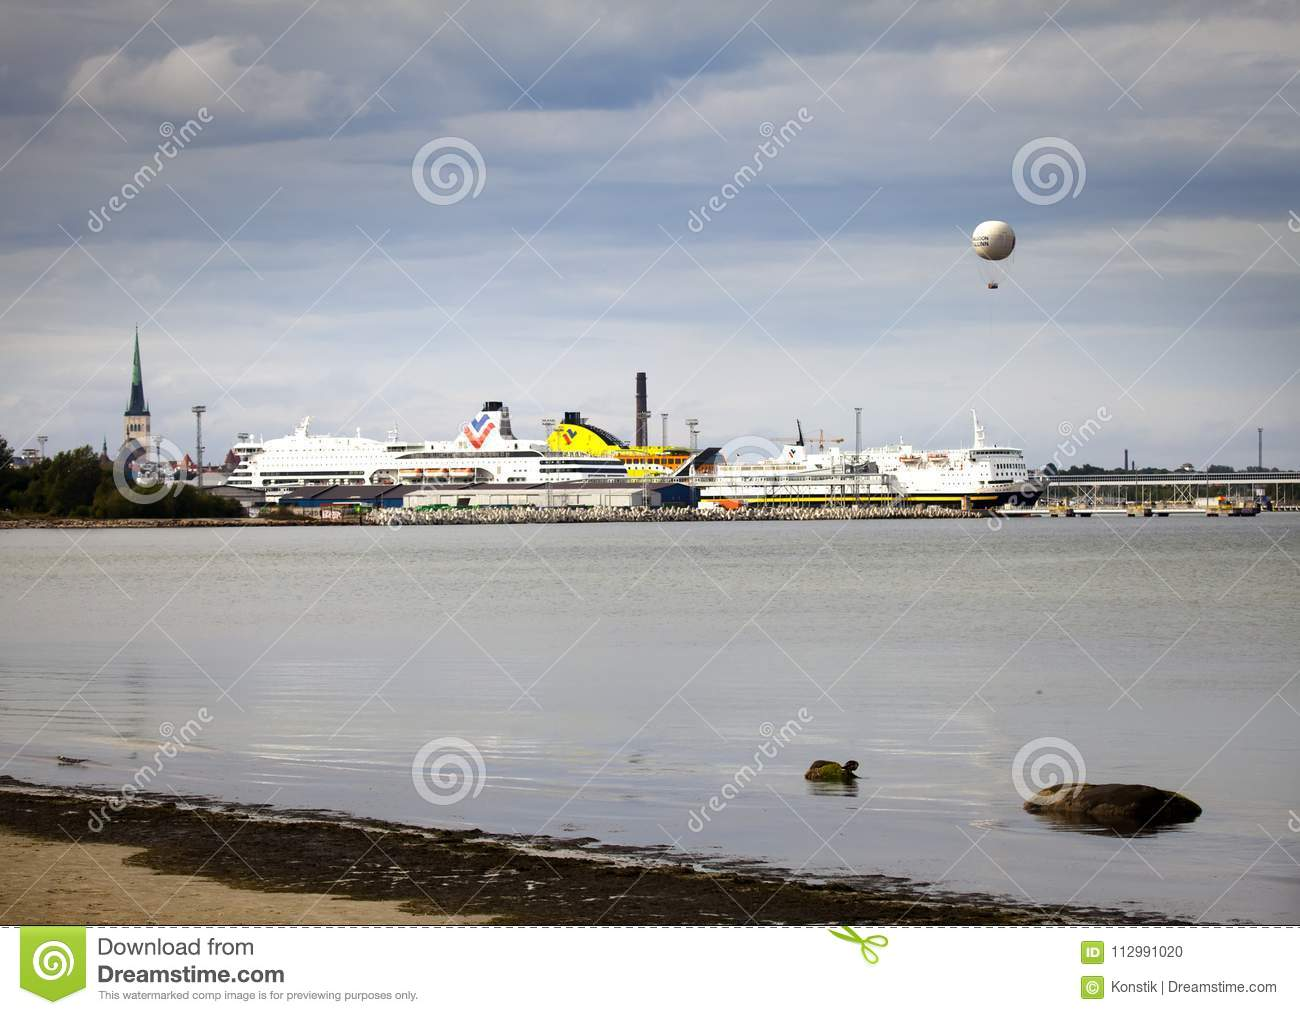 TALLINN, ESTONIA- SEPTEMBER 7, 2015: Cruise ship in port with old town and balloon in background